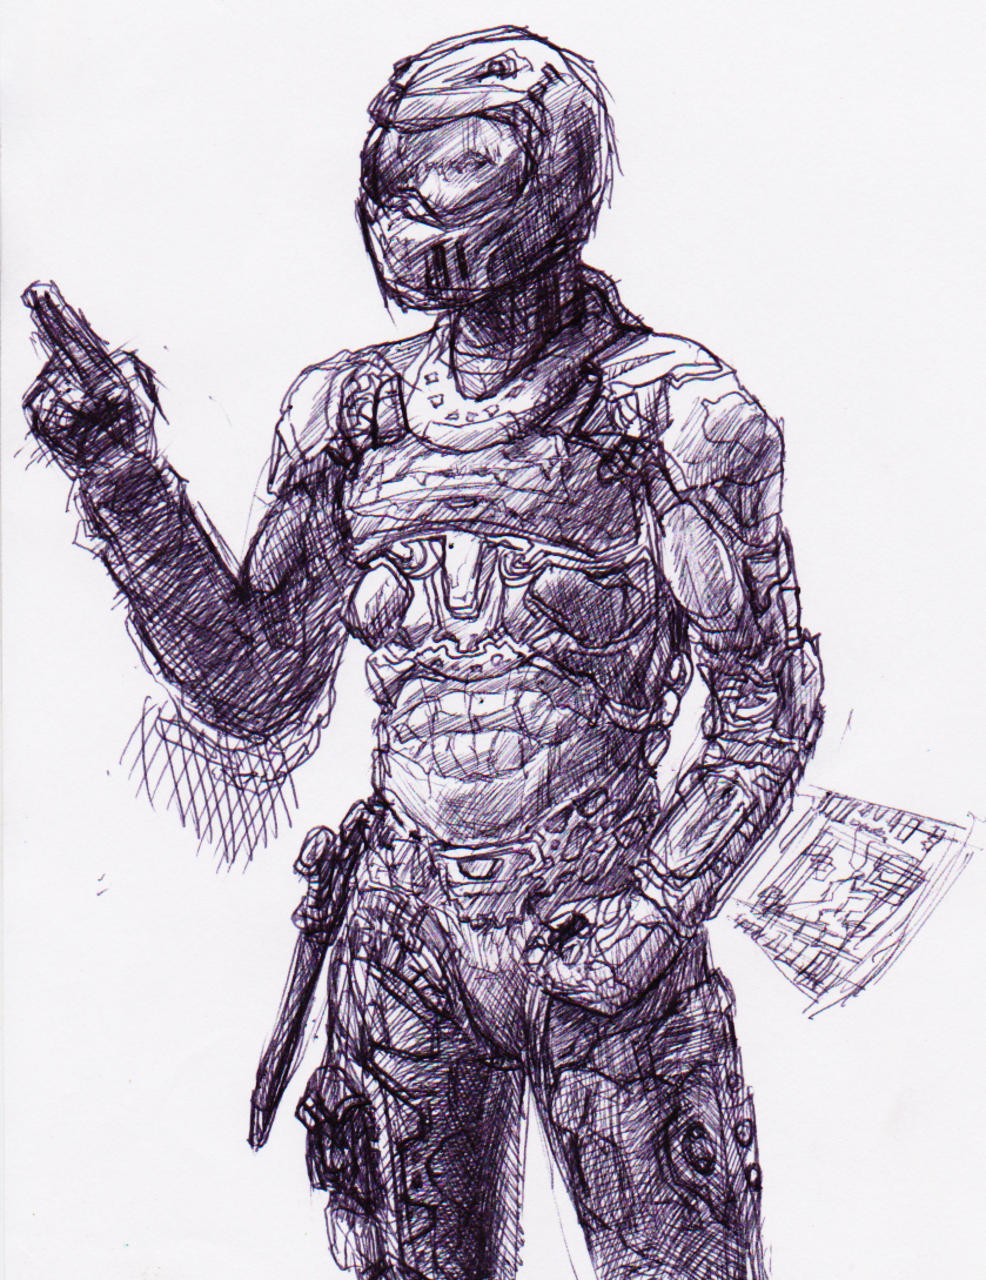 The Expanse inspired Military Space Suit sketch by Darren Kearney